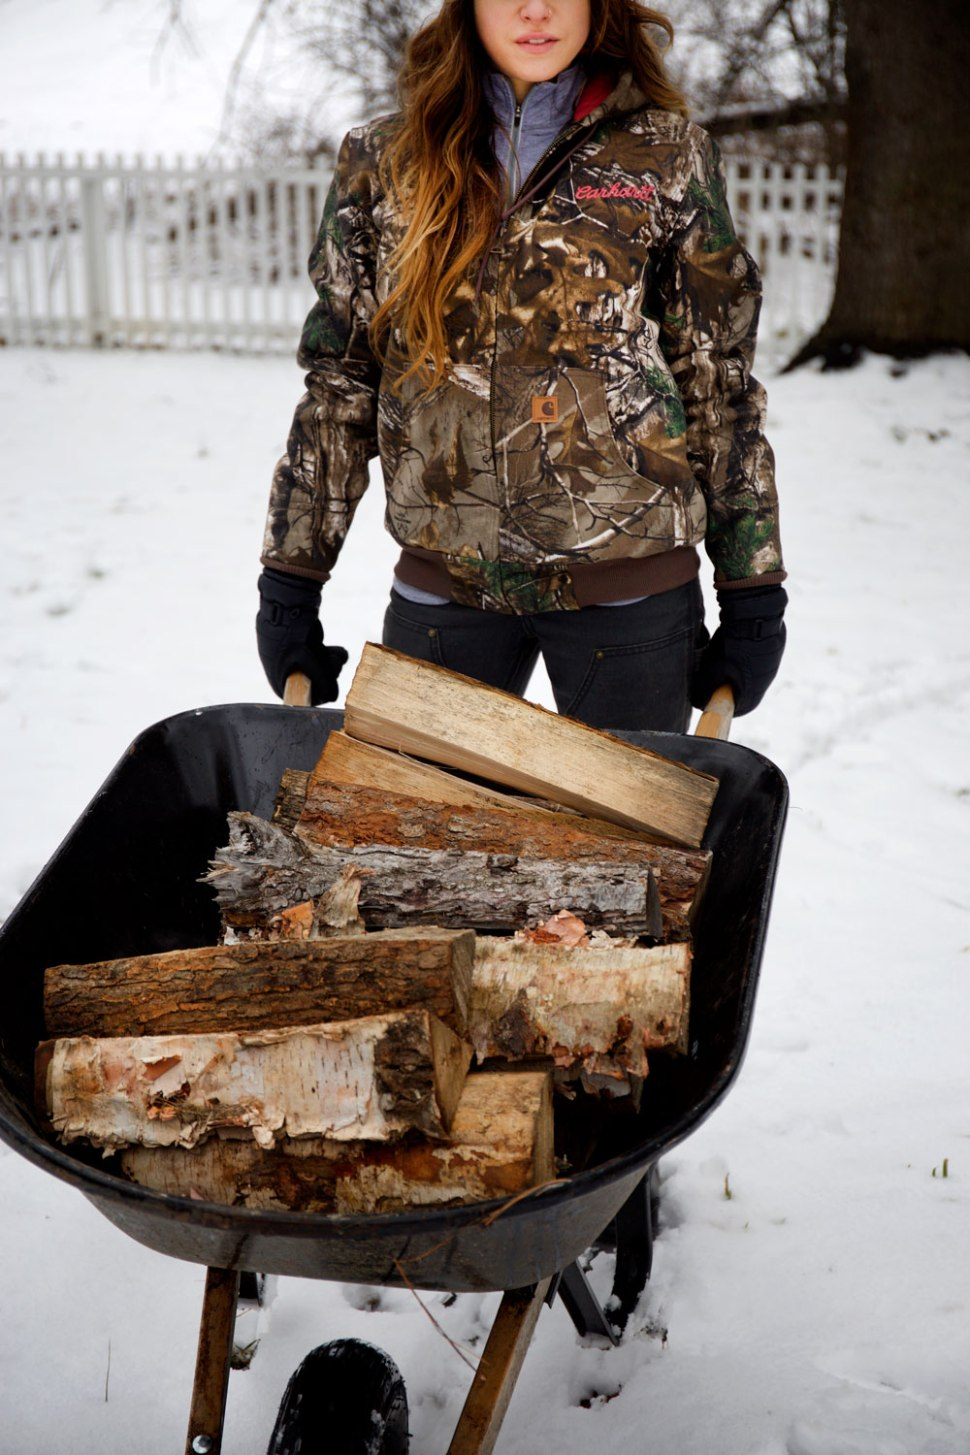 Winter Chores & Carhartt Camo Active Jac / Crafted in Carhartt